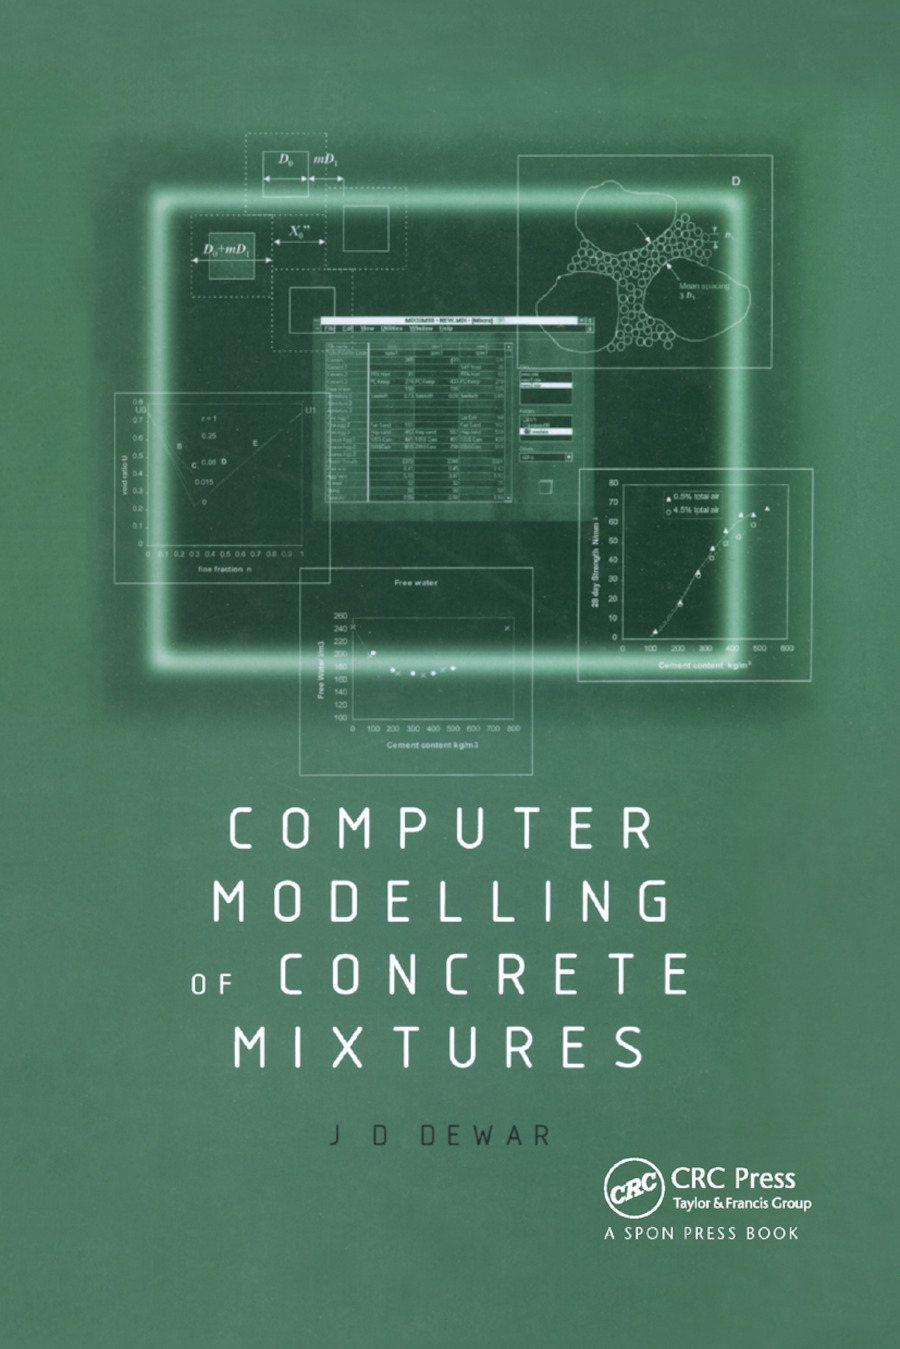 Computer Modelling of Concrete Mixtures: 1st Edition (Paperback) book cover